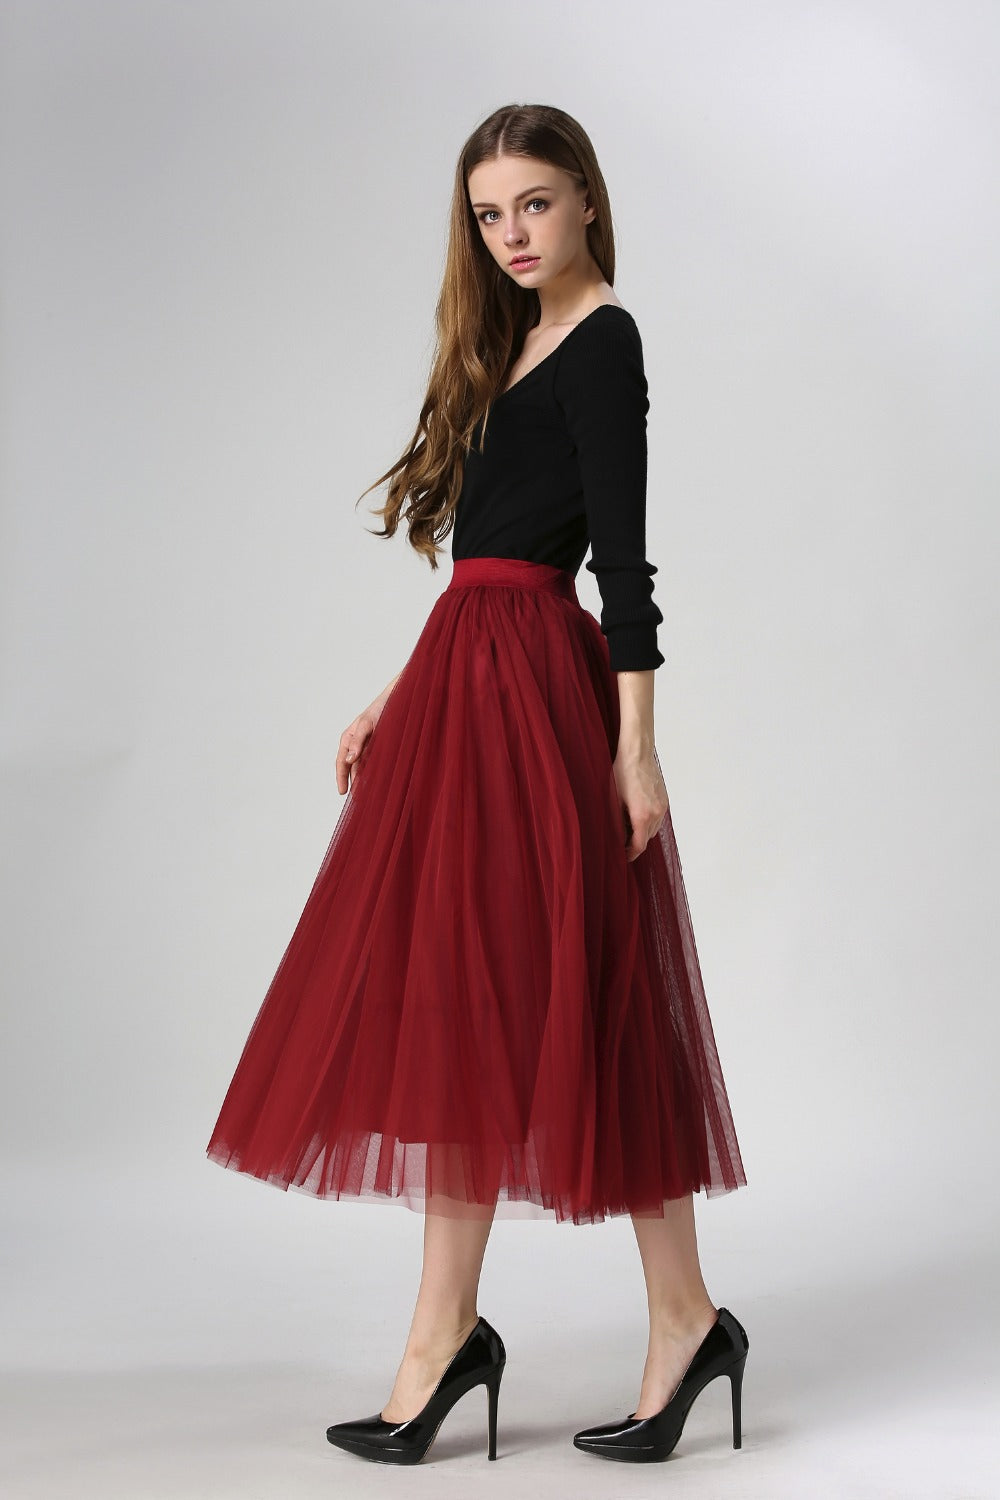 Red High Waist Tutu Tulle Skirt